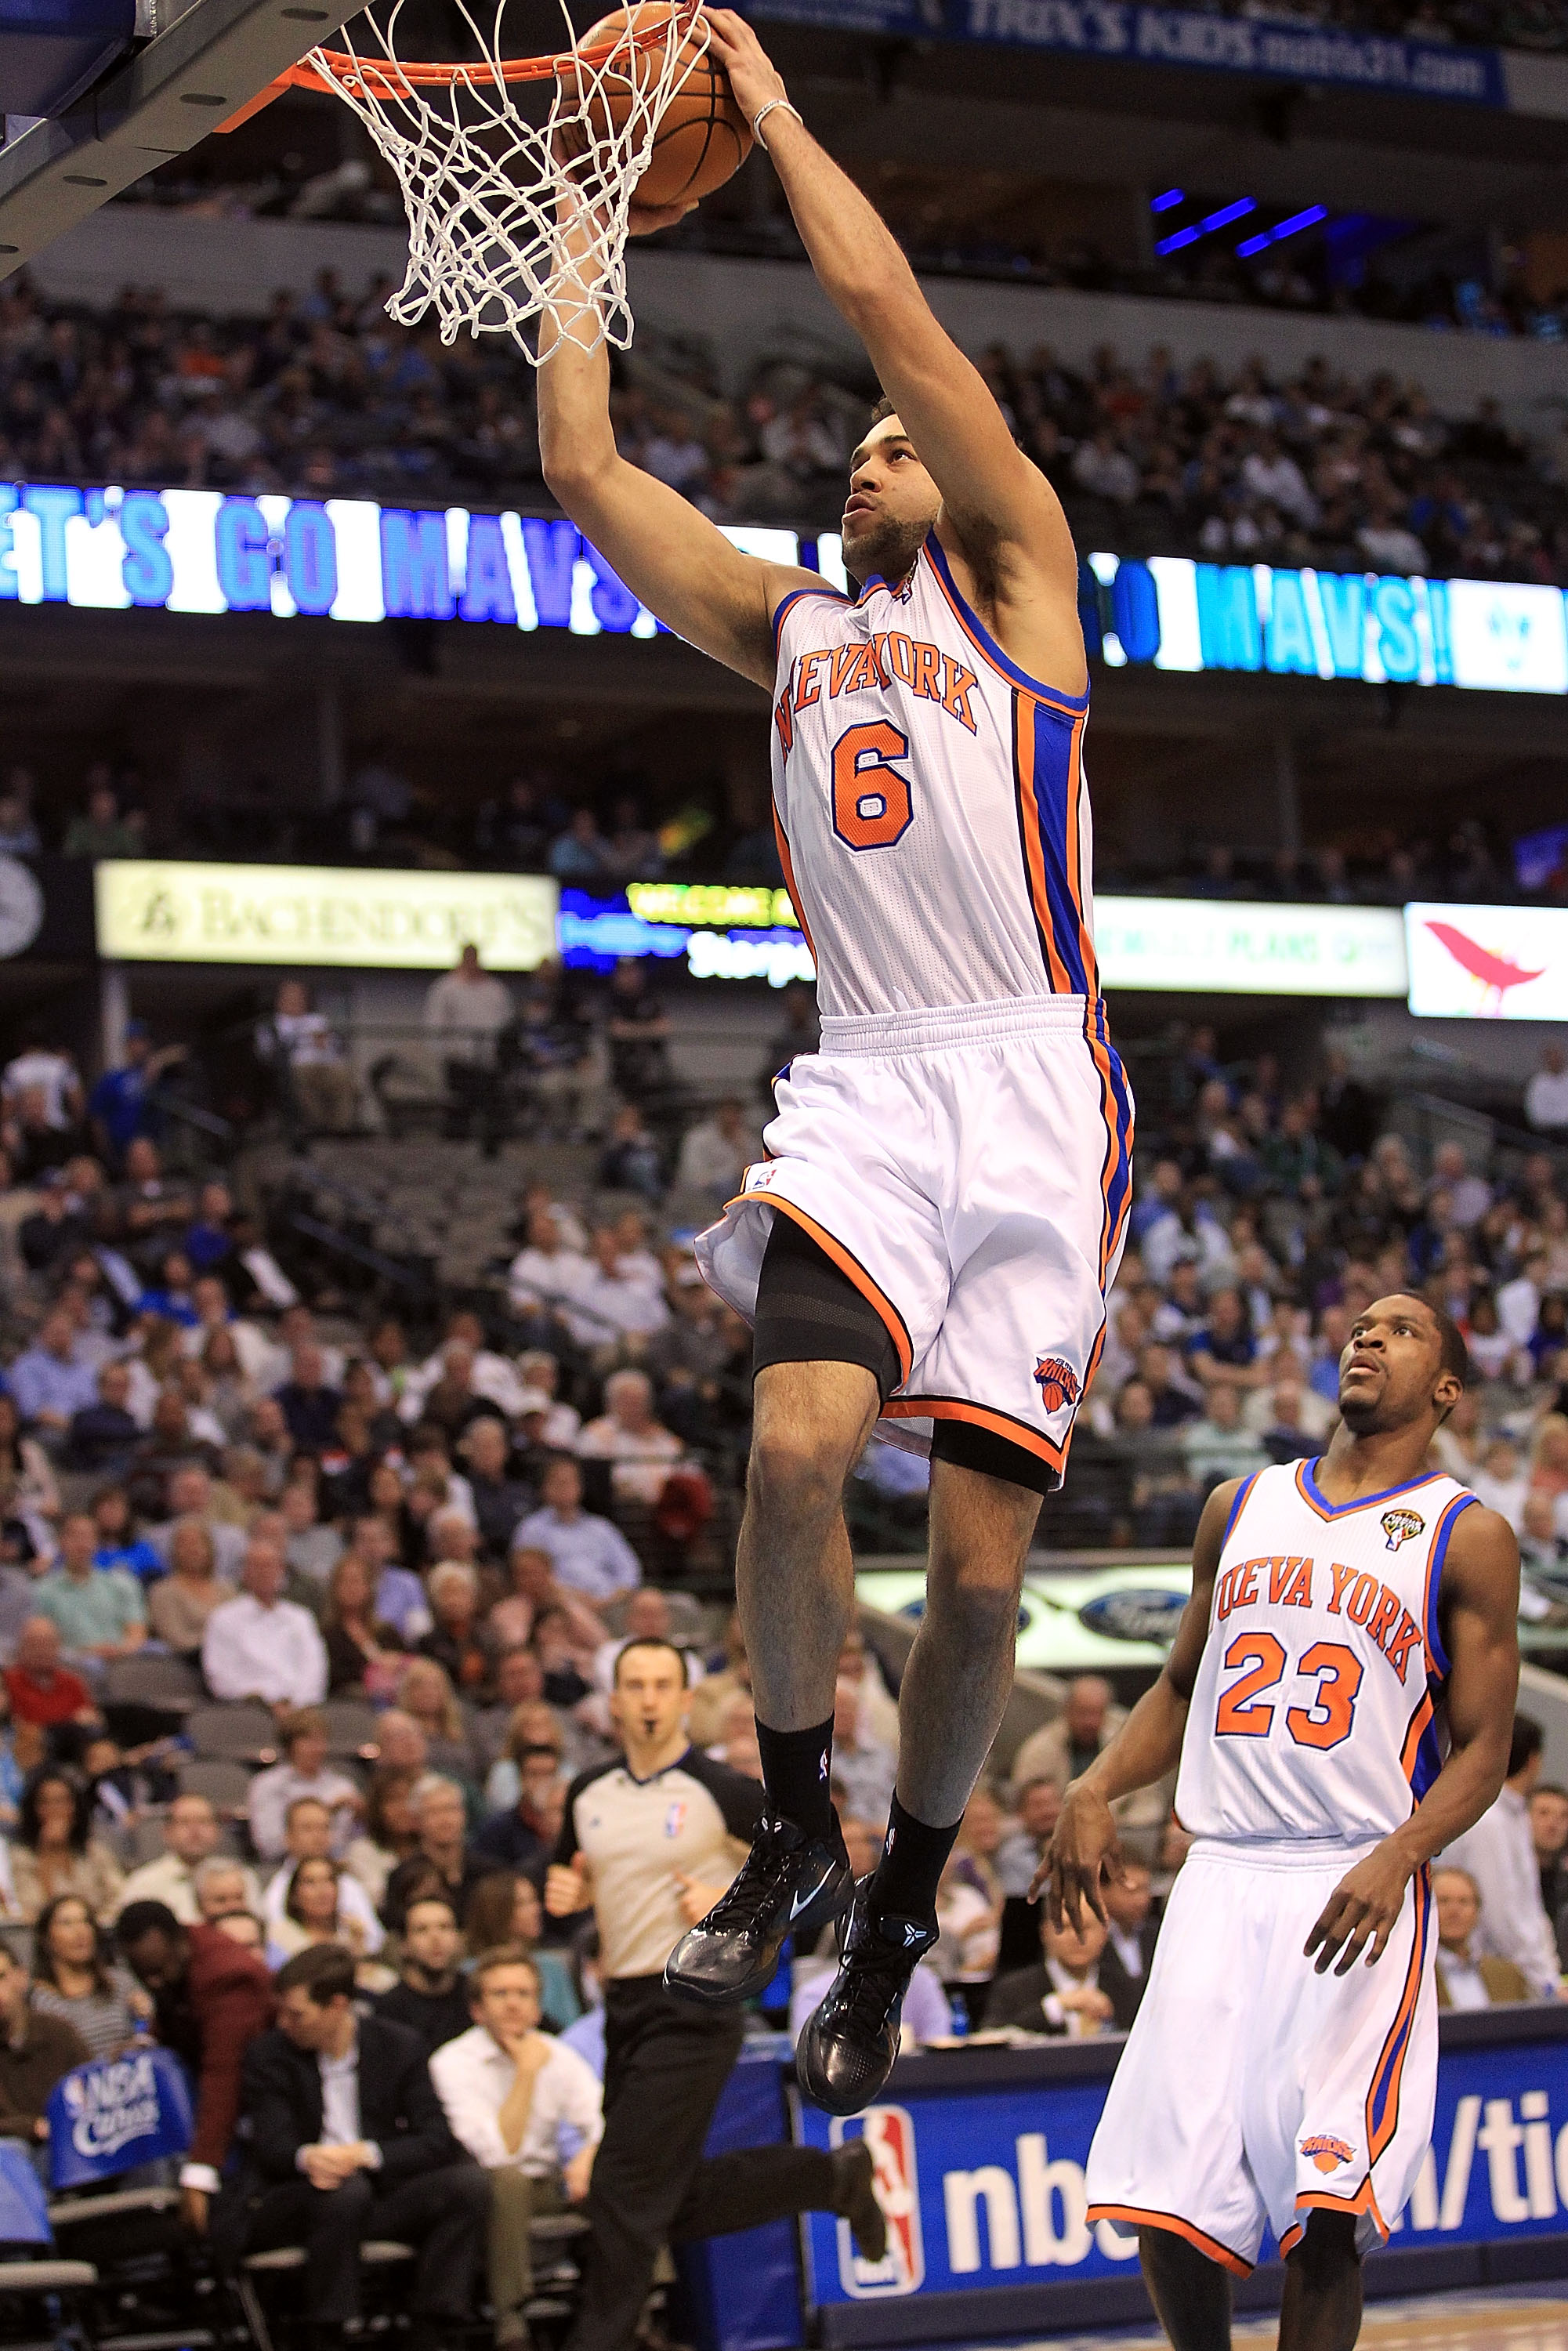 DALLAS, TX - MARCH 10:  Forward Landry Fields #6 of the New York Knicks makes a slam dunk against the Dallas Mavericks at American Airlines Center on March 10, 2011 in Dallas, Texas.  NOTE TO USER: User expressly acknowledges and agrees that, by downloadi